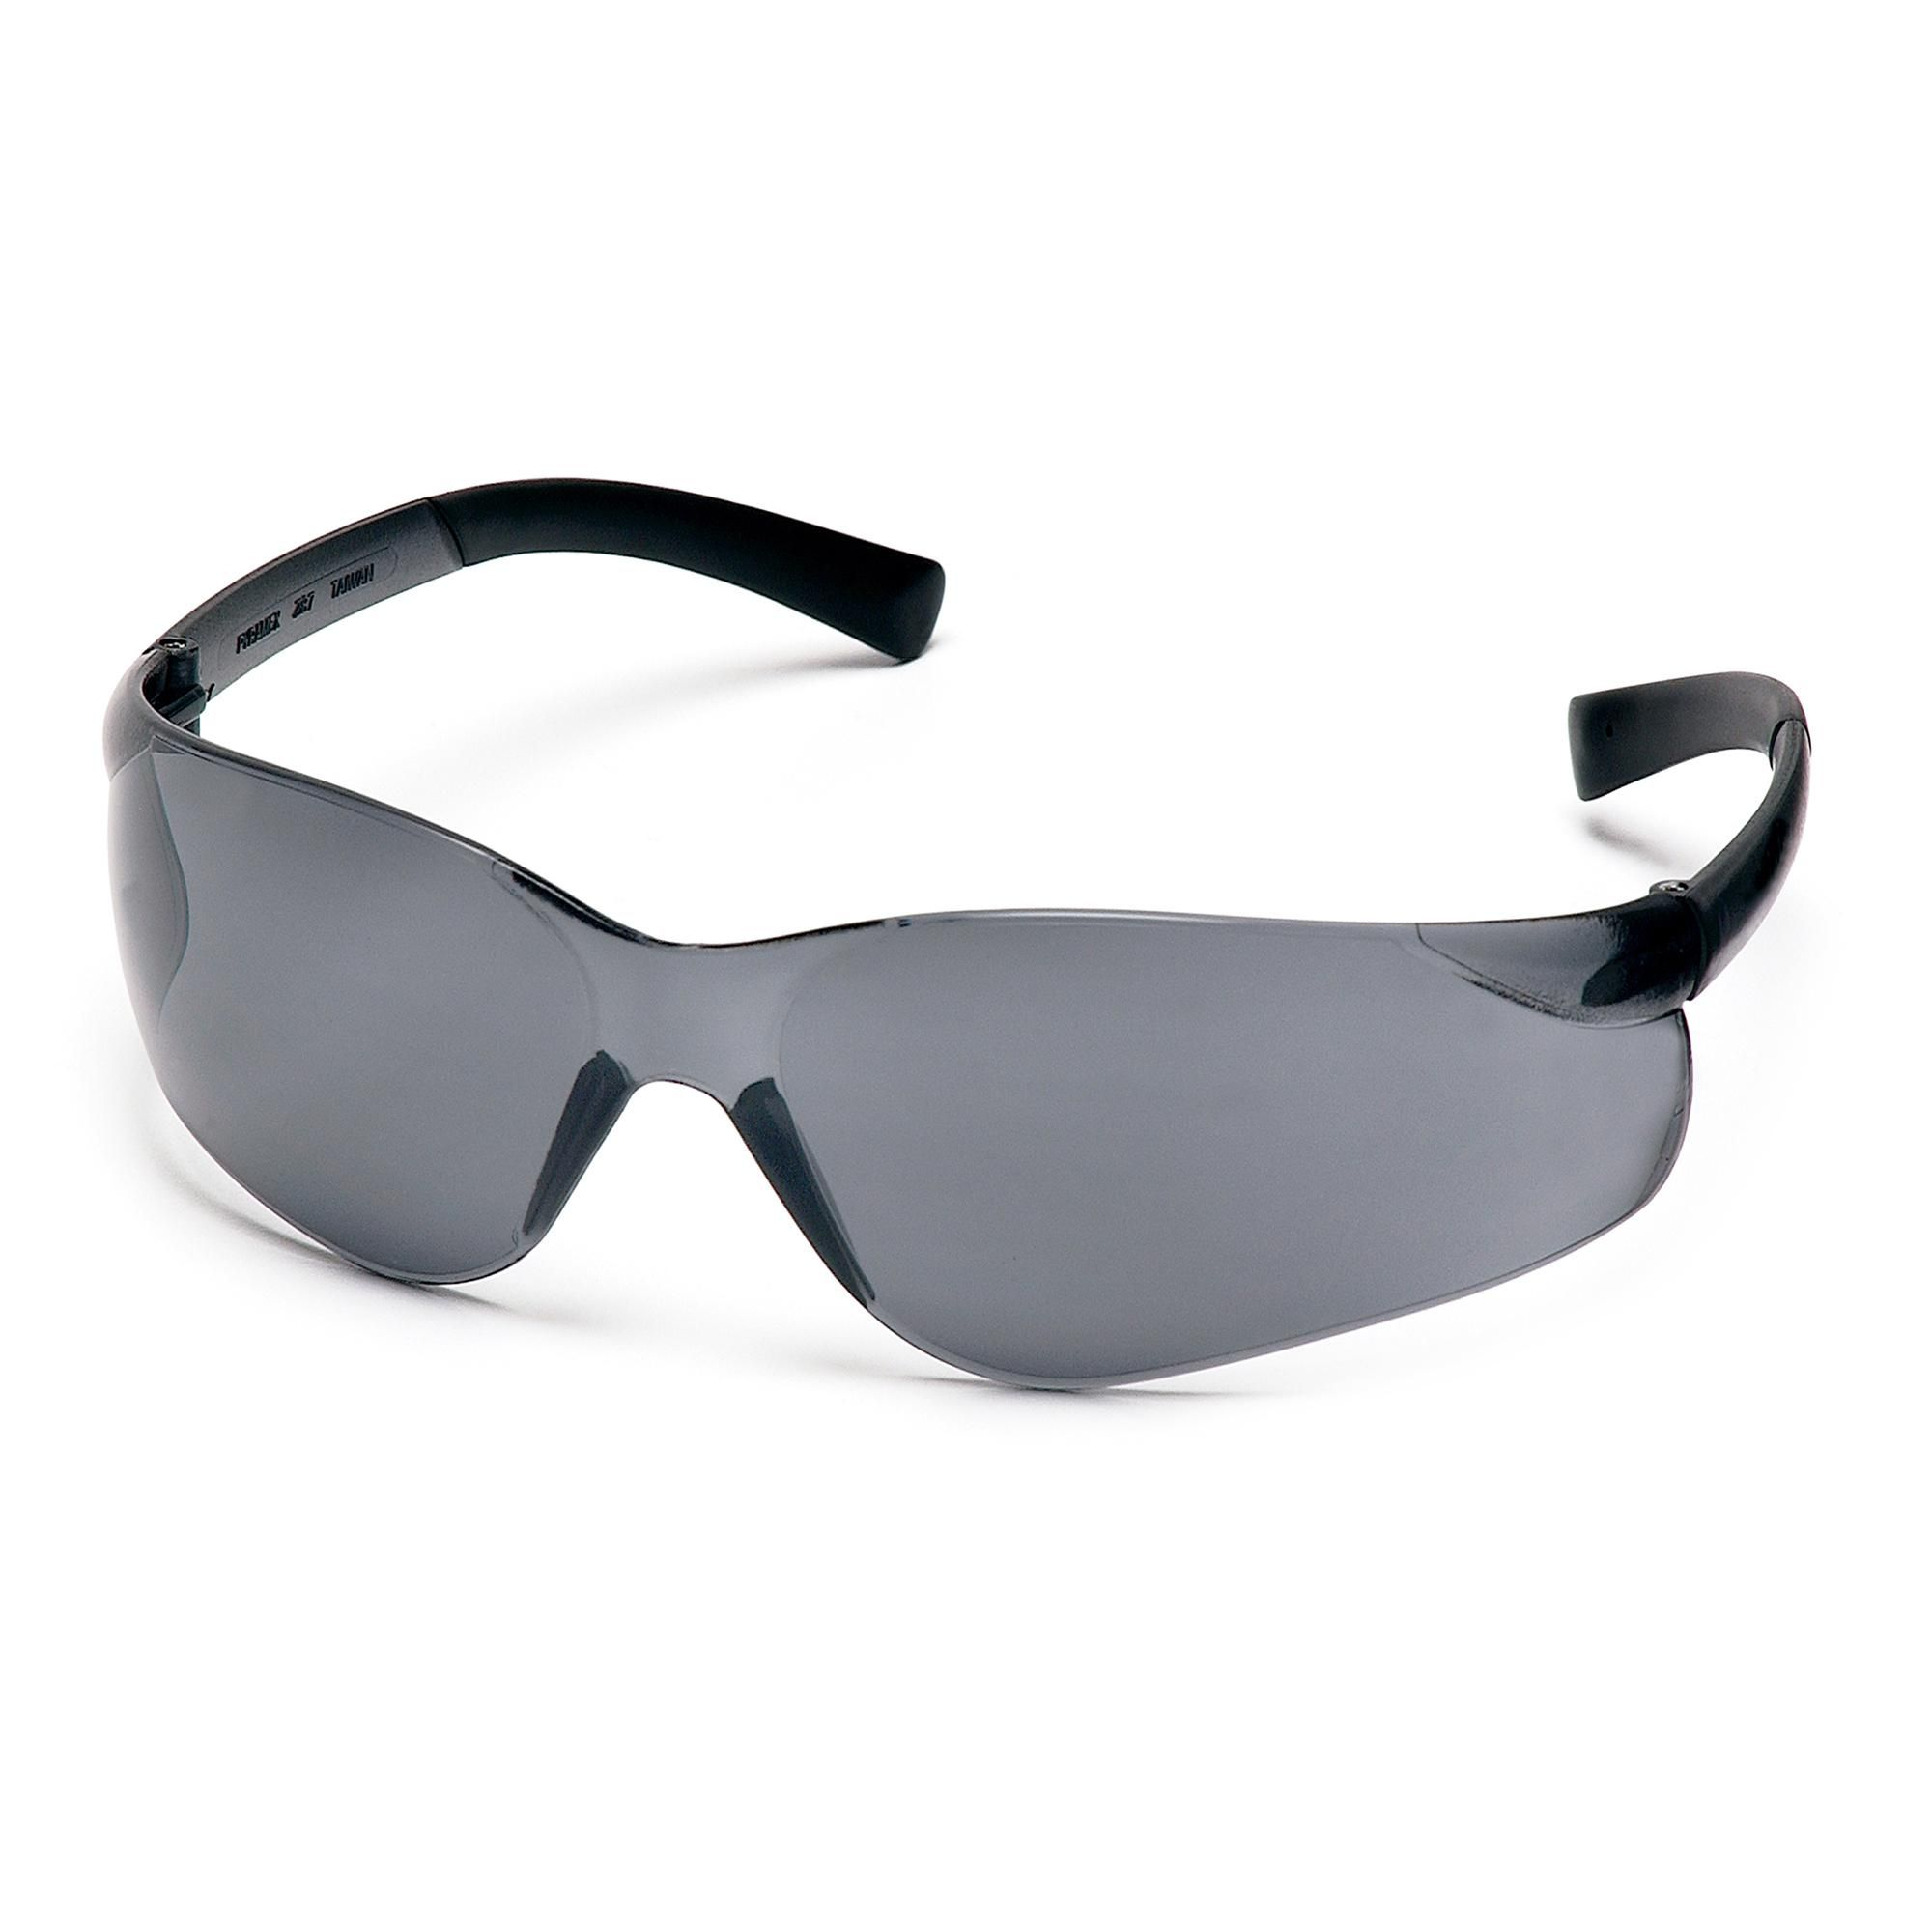 d37d72a2db76 Pyramex Safety Products - Ztek Safety Glasses - Gray Lens with Gray Temples